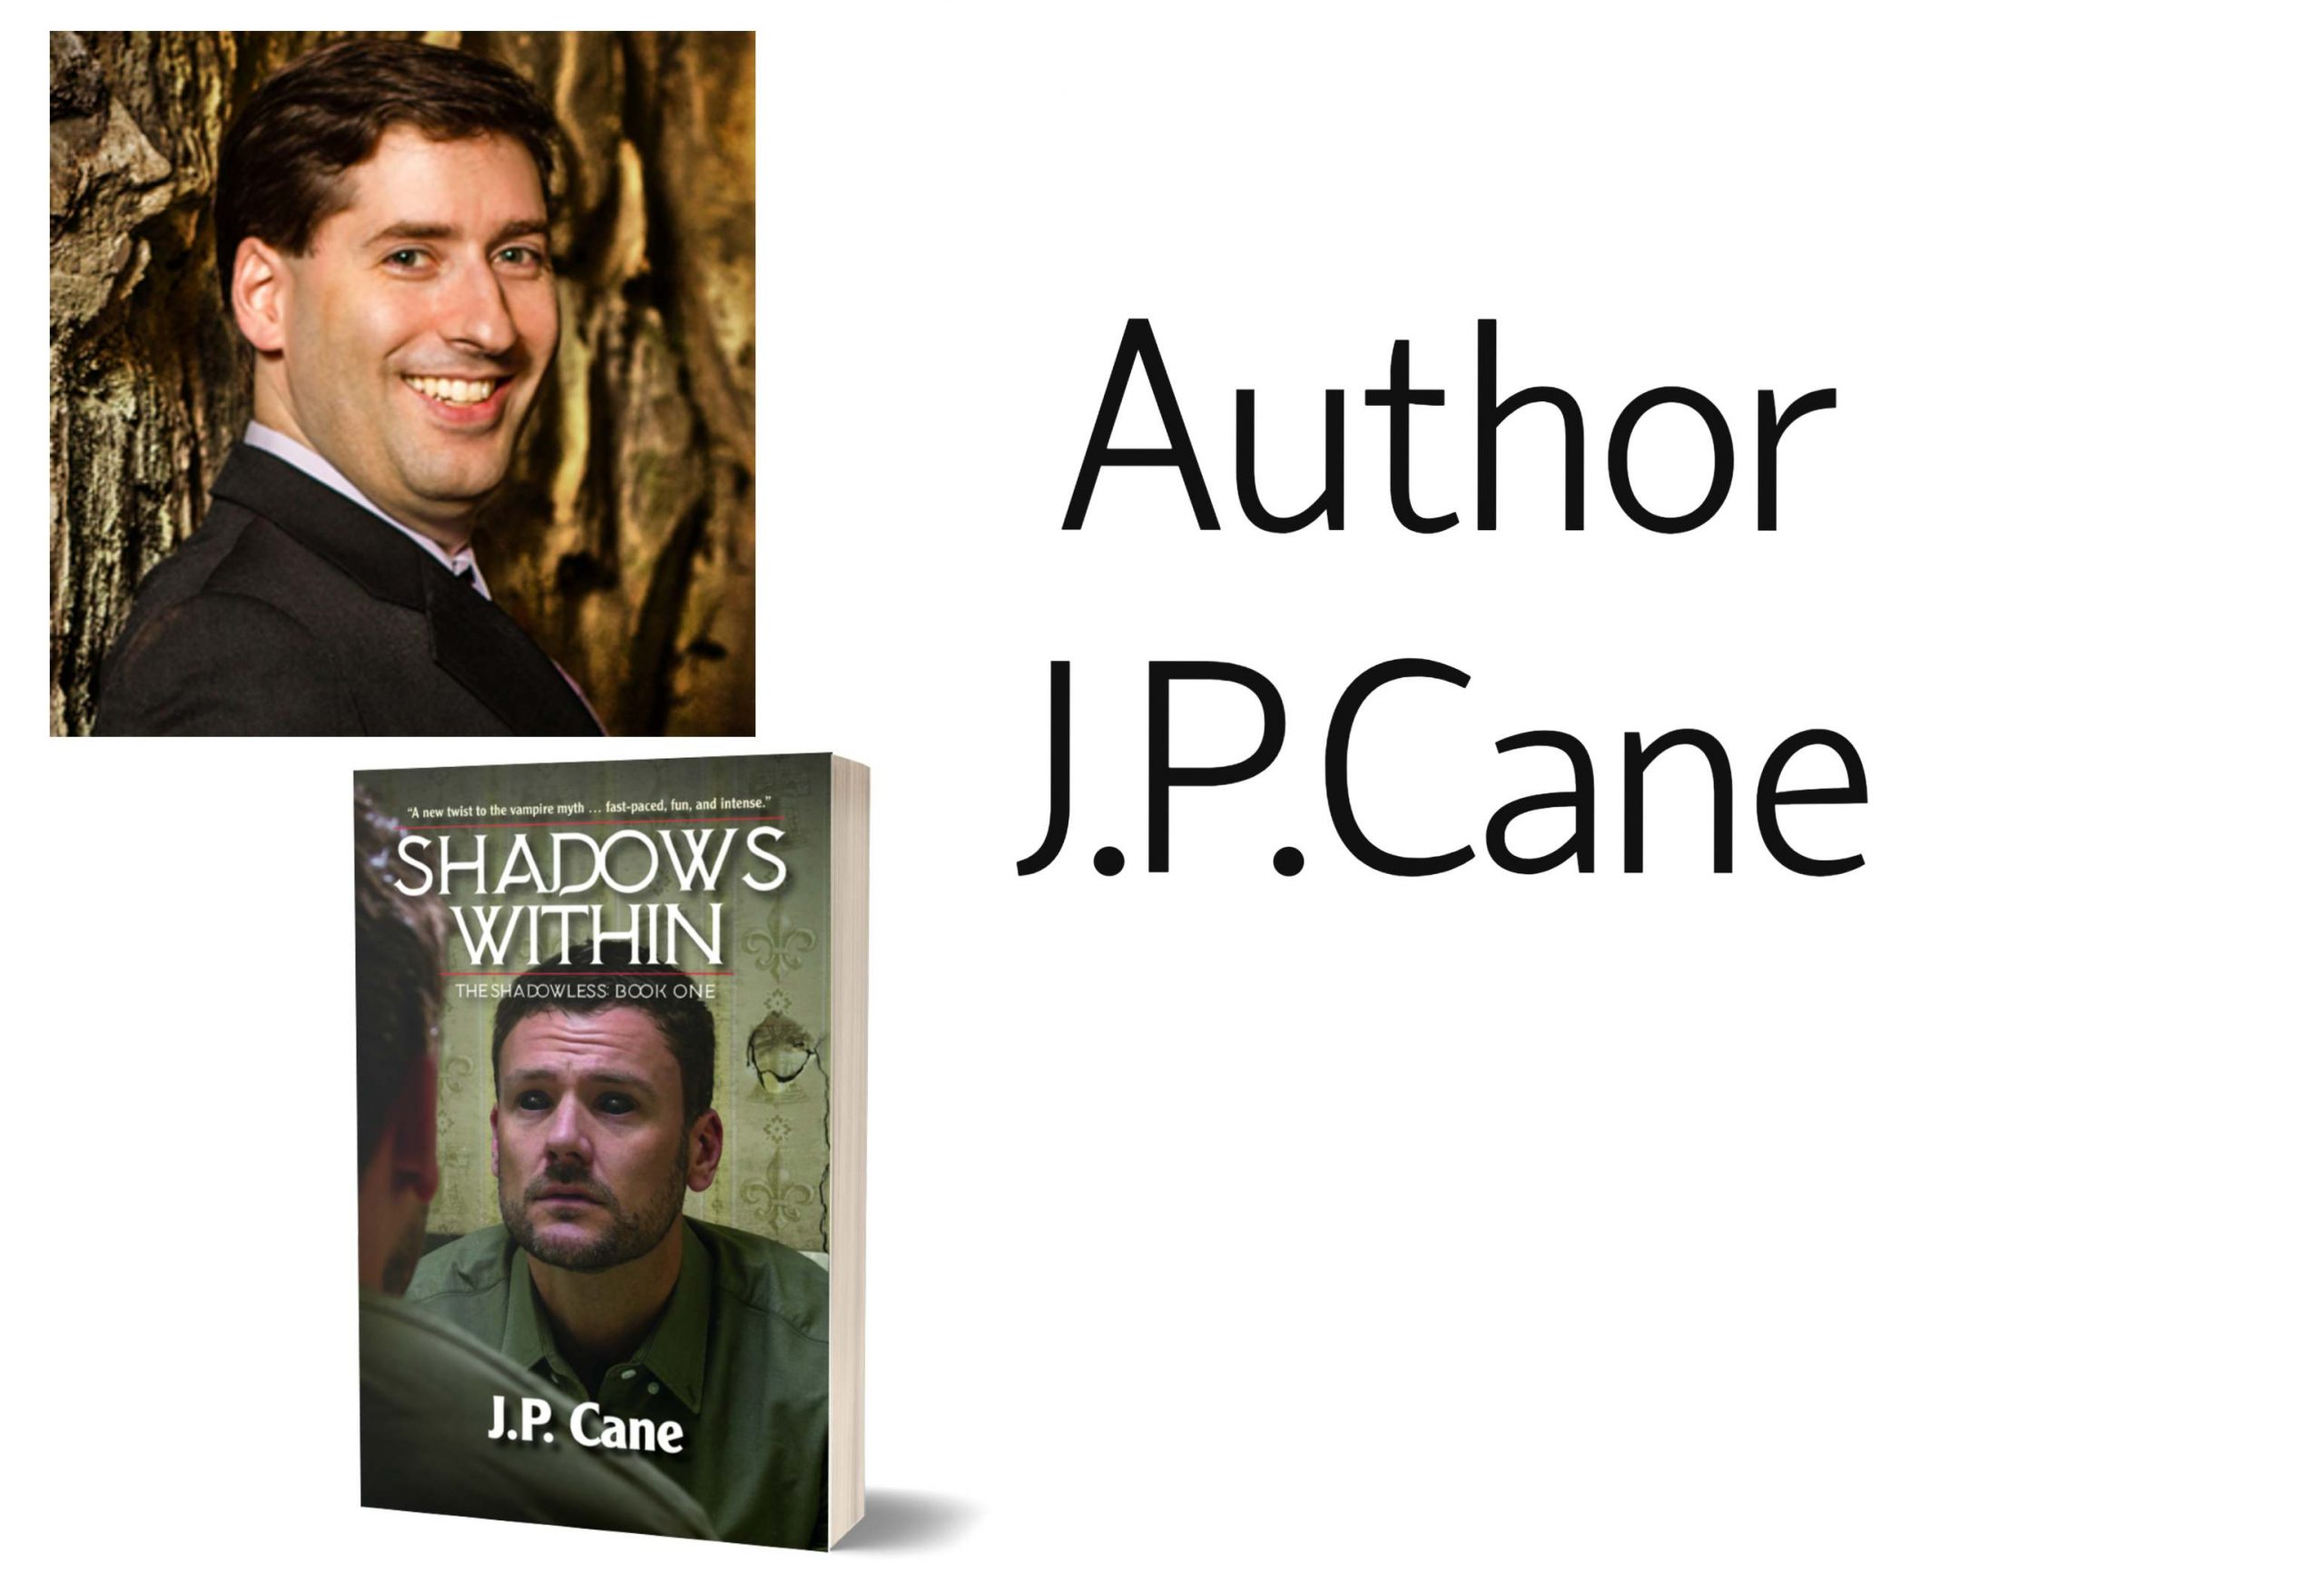 Author J.P. Cane